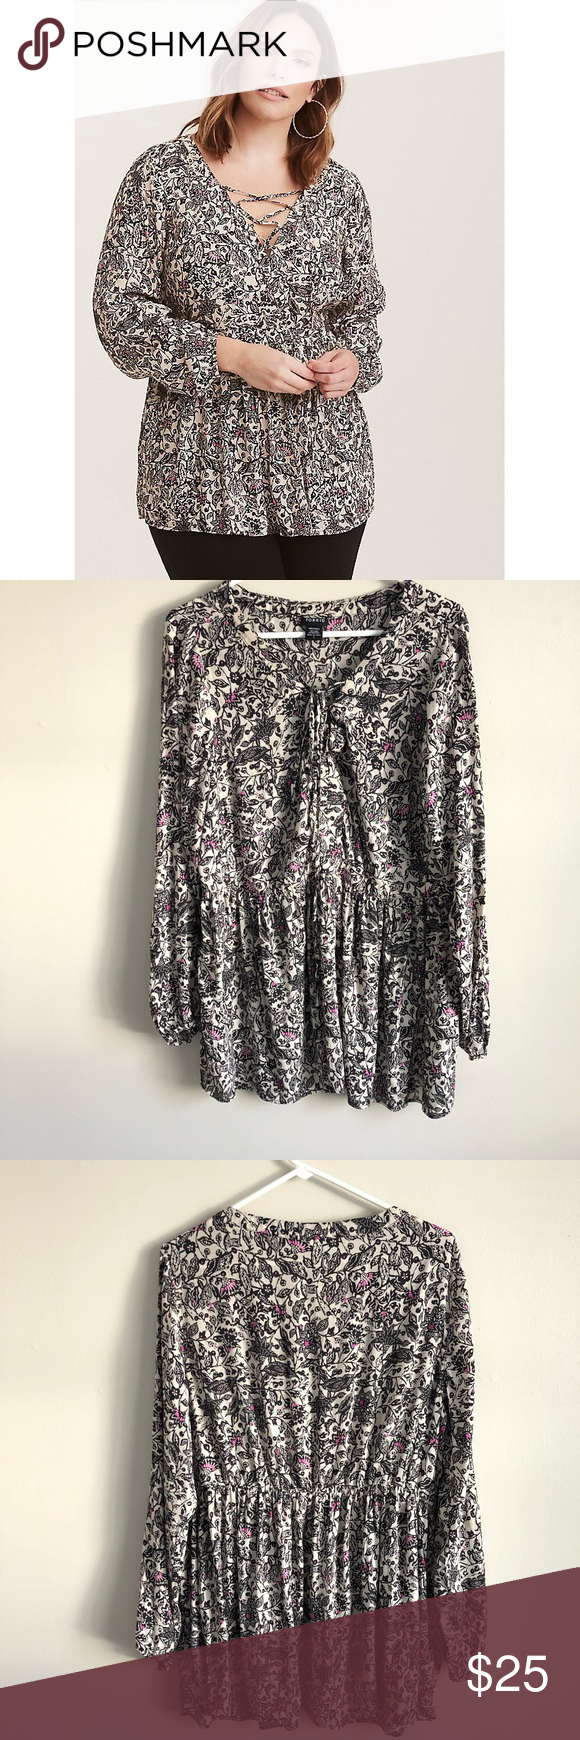 NWT Torrid gray v-neck tunic lace up side sweater